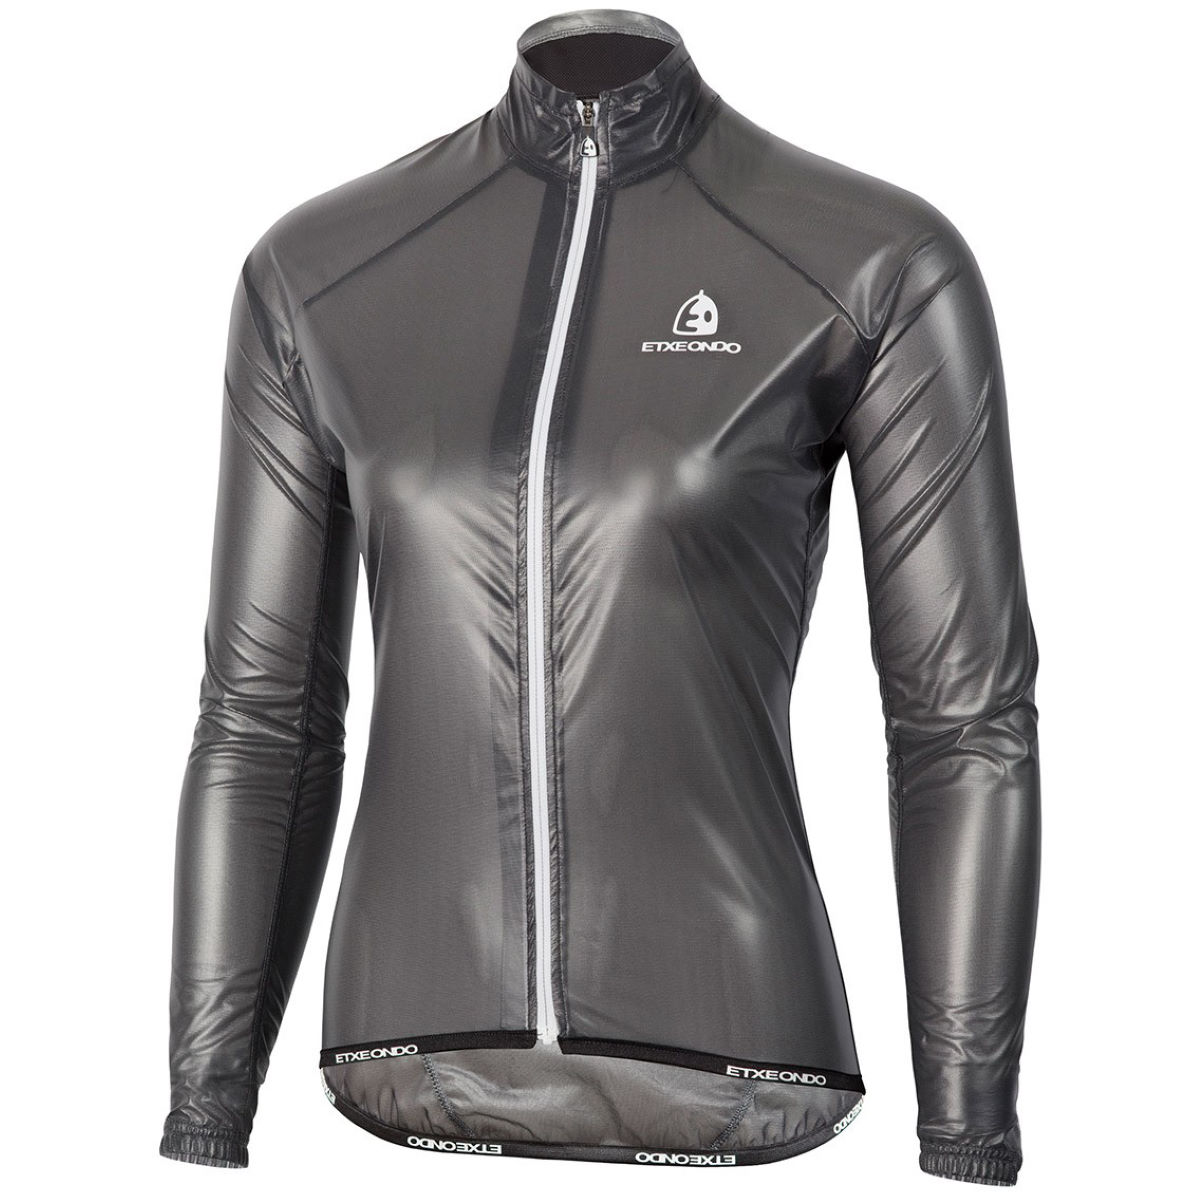 Chaqueta impermeable Etxeondo Busti para mujer - Impermeables - ciclismo